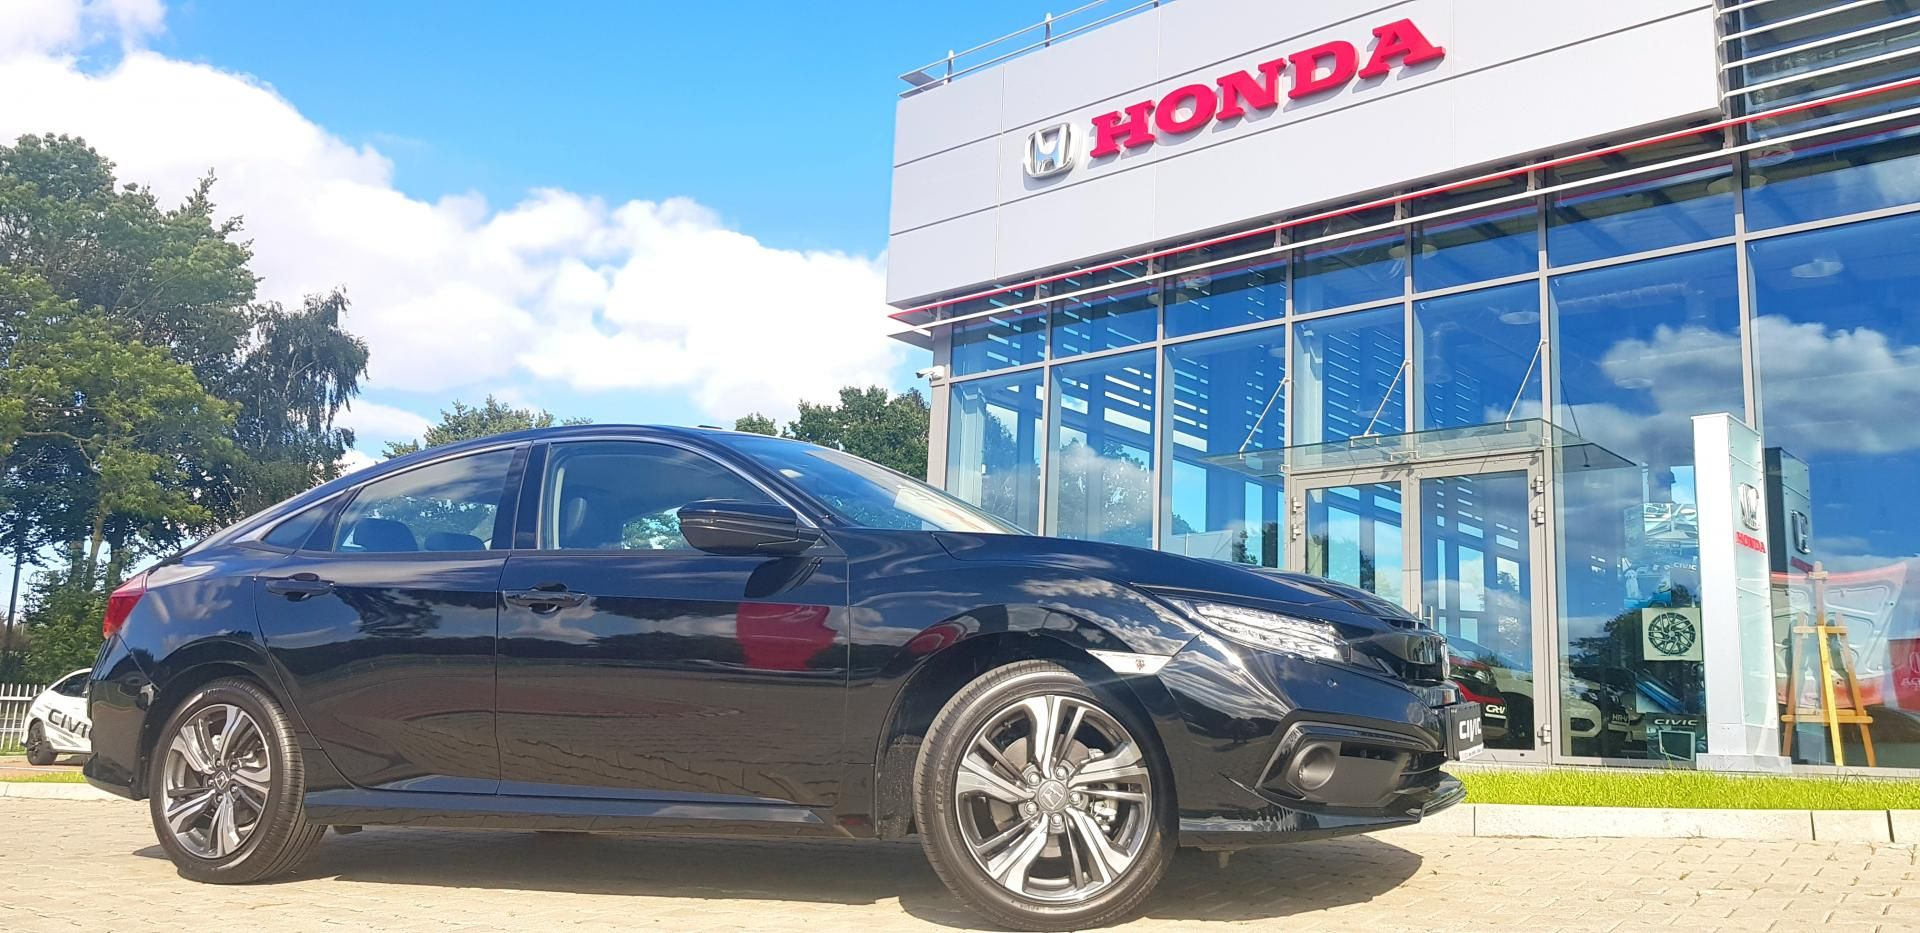 Honda Civic Sedan 1.5 TURBO Executive MT 2020  RABAT 12 000,-